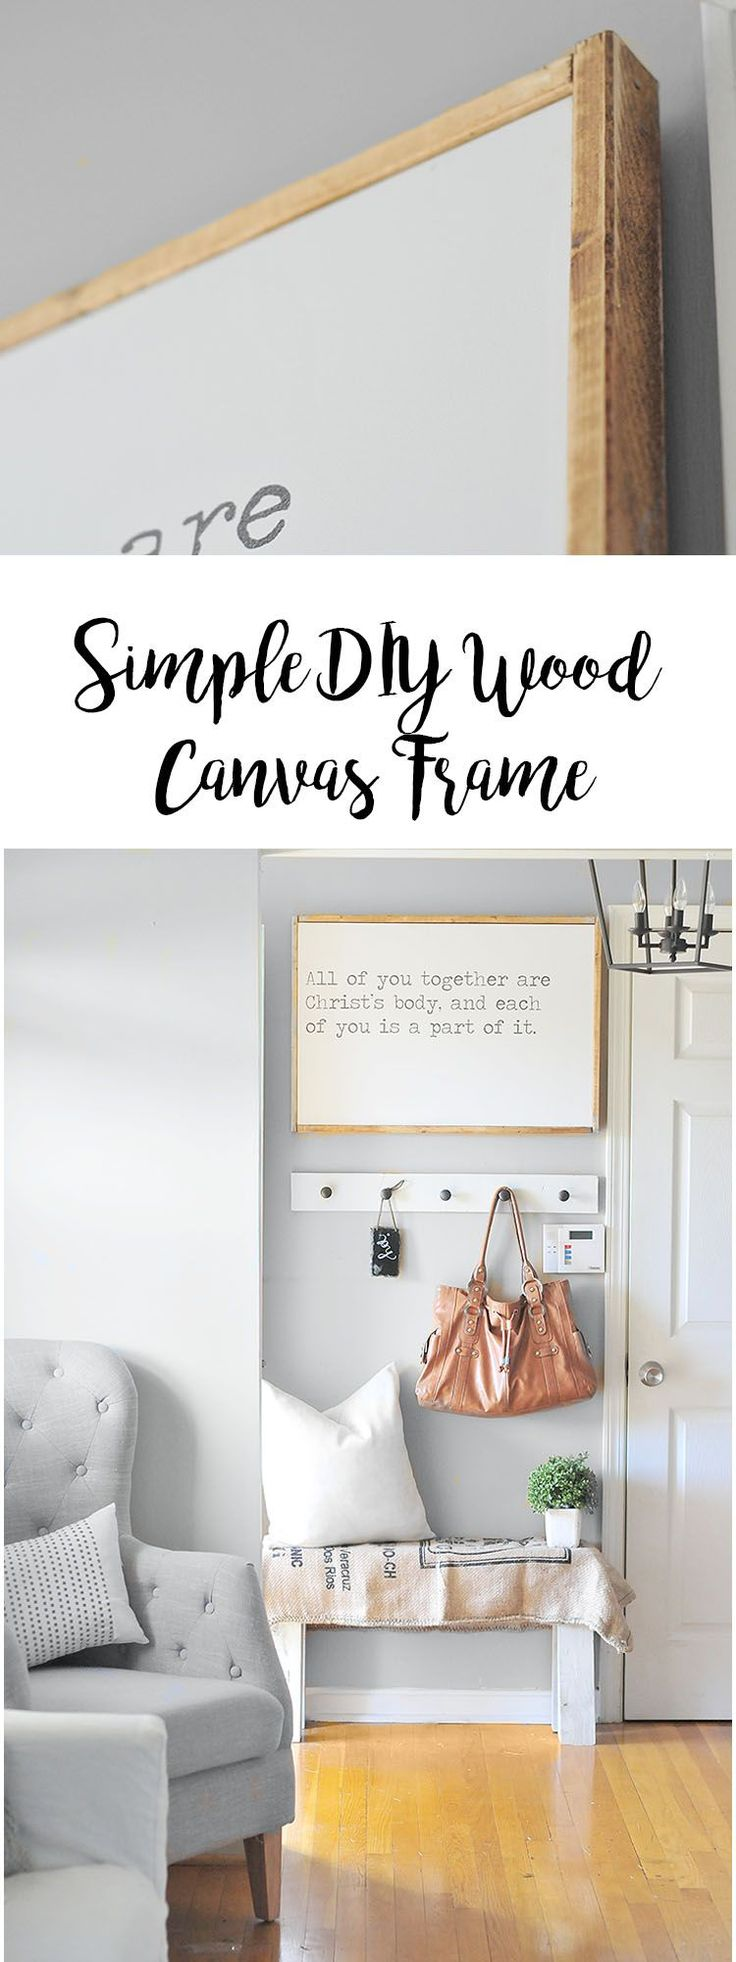 DIY Wood Canvas Frame